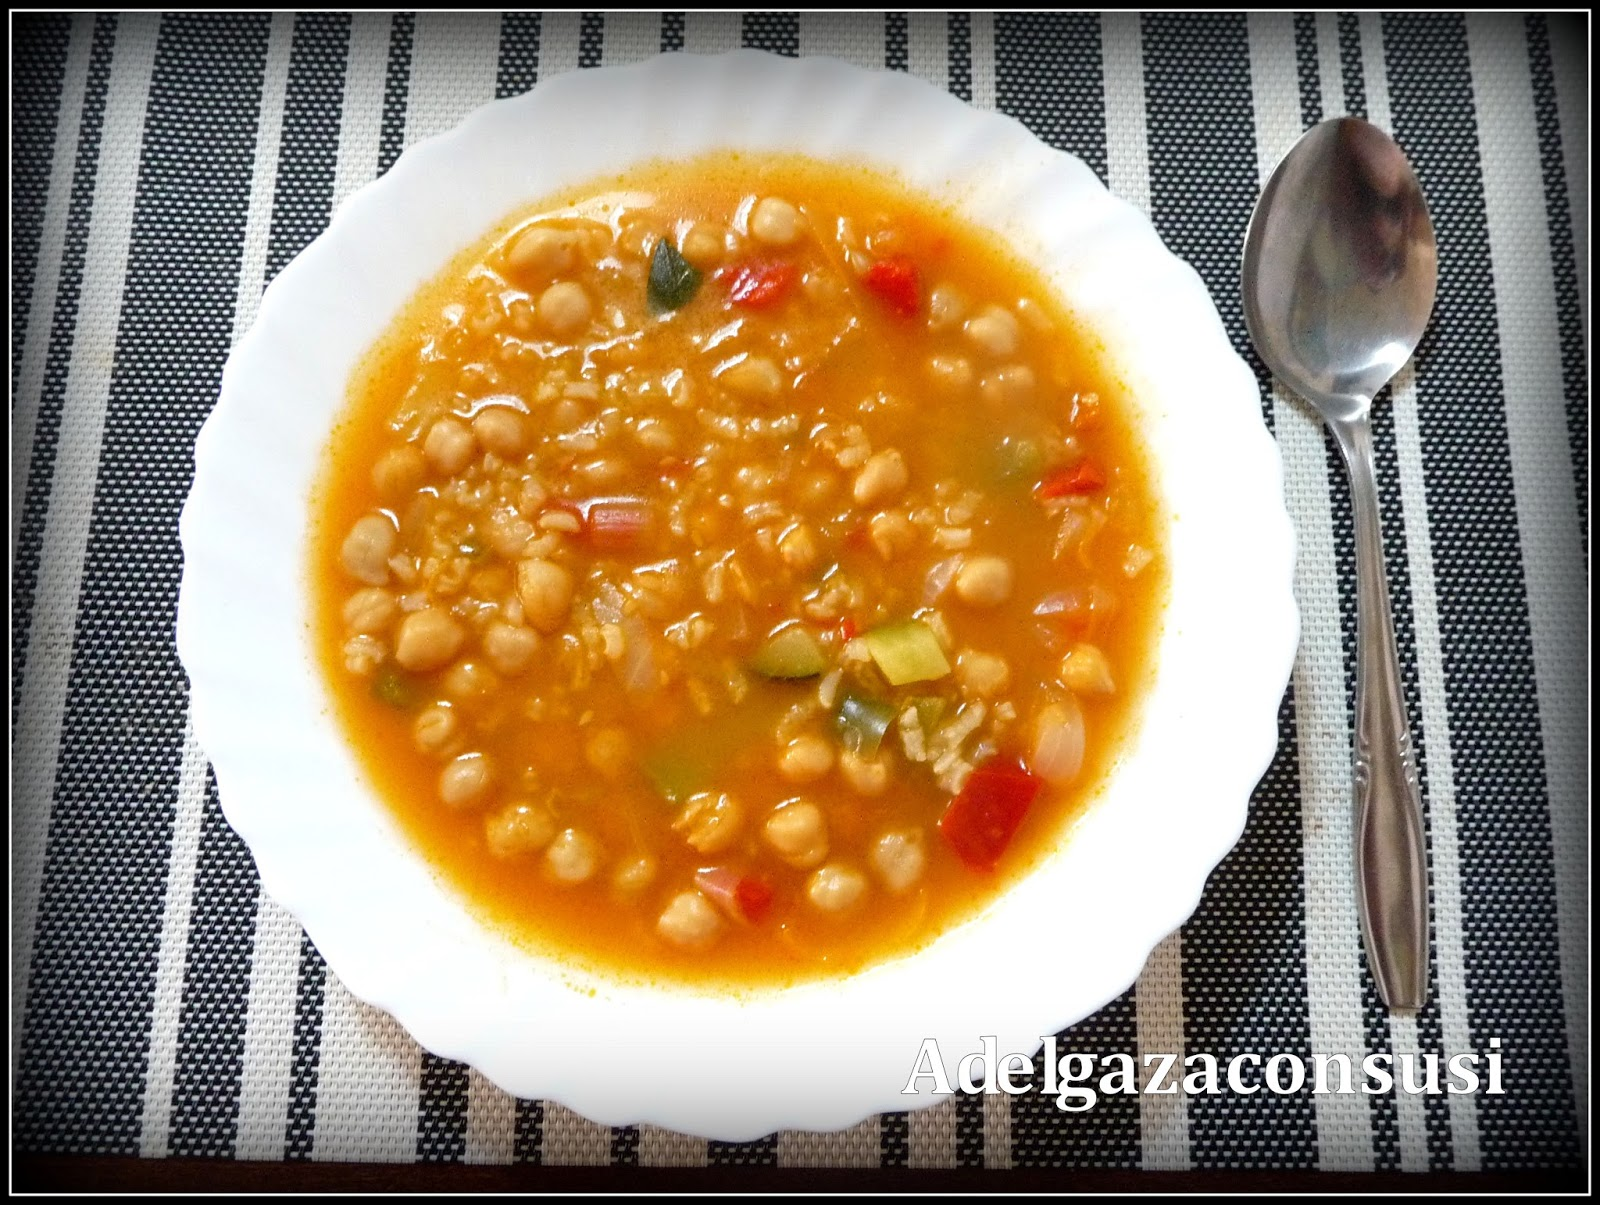 Recetas light adelgazaconsusi garbanzos con arroz y - Potaje garbanzos con arroz ...